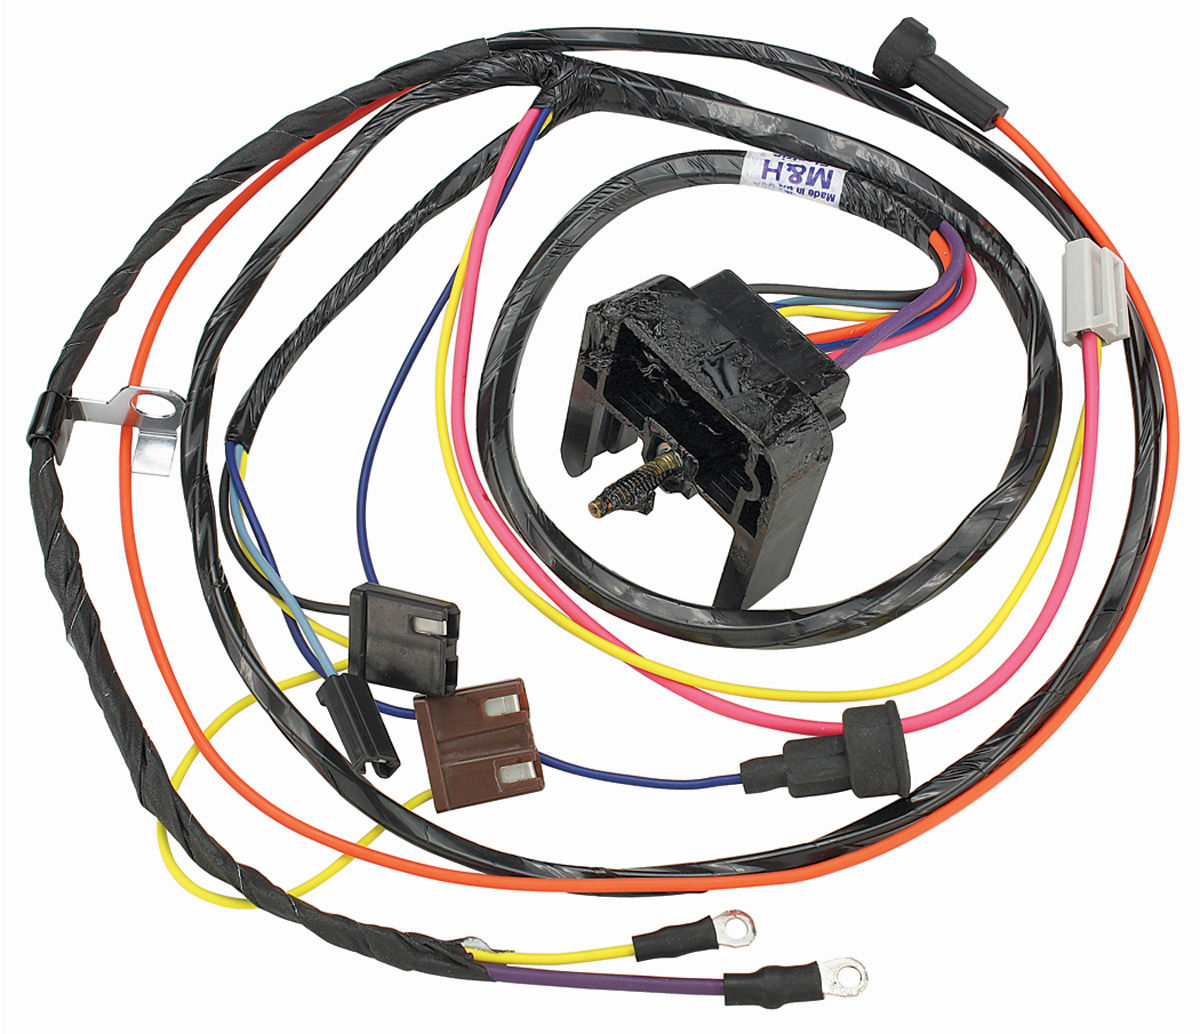 1969 Gm Coil Wiring Example Electrical Diagram M H Chevelle Engine Harness V8 Hei Small Block W External Resistor Chevy Ignition